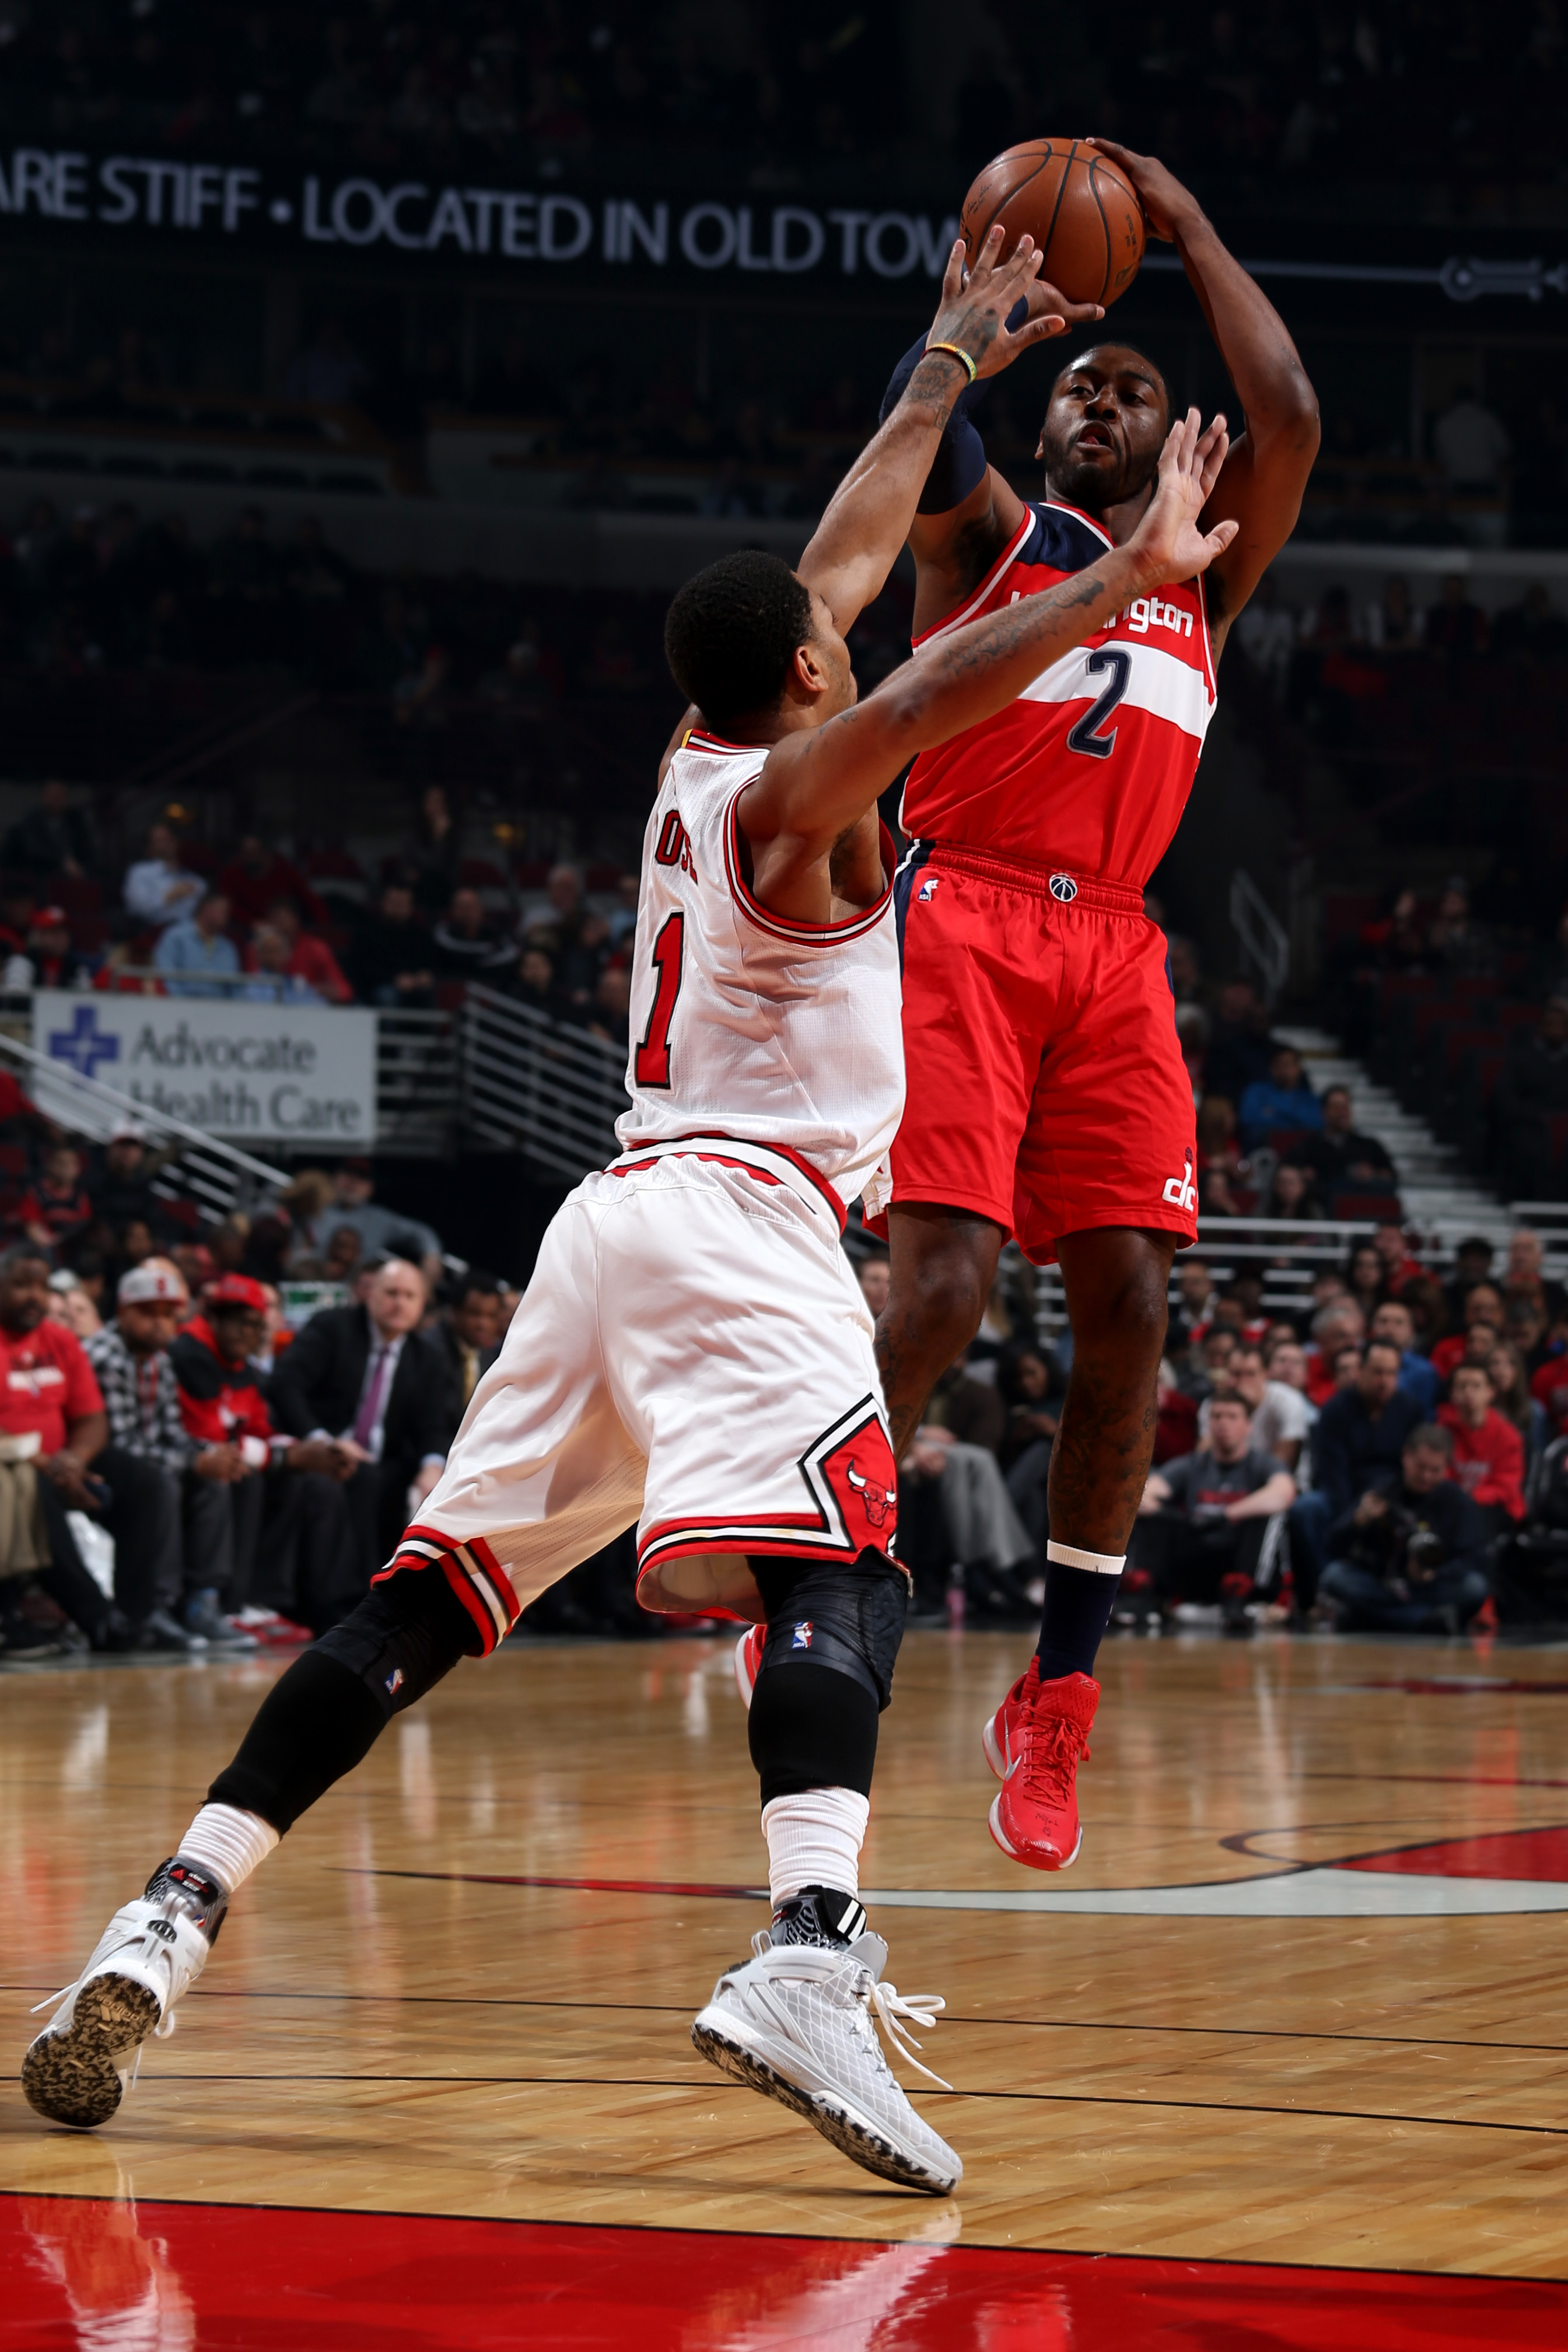 CHICAGO, IL - JANUARY 11:  John Wall #2 of the Washington Wizards shoots against Derrick Rose #1 of the Chicago Bulls on January 11, 2016 at the United Center in Chicago, Illinois. (Photo by Gary Dineen/NBAE via Getty Images)